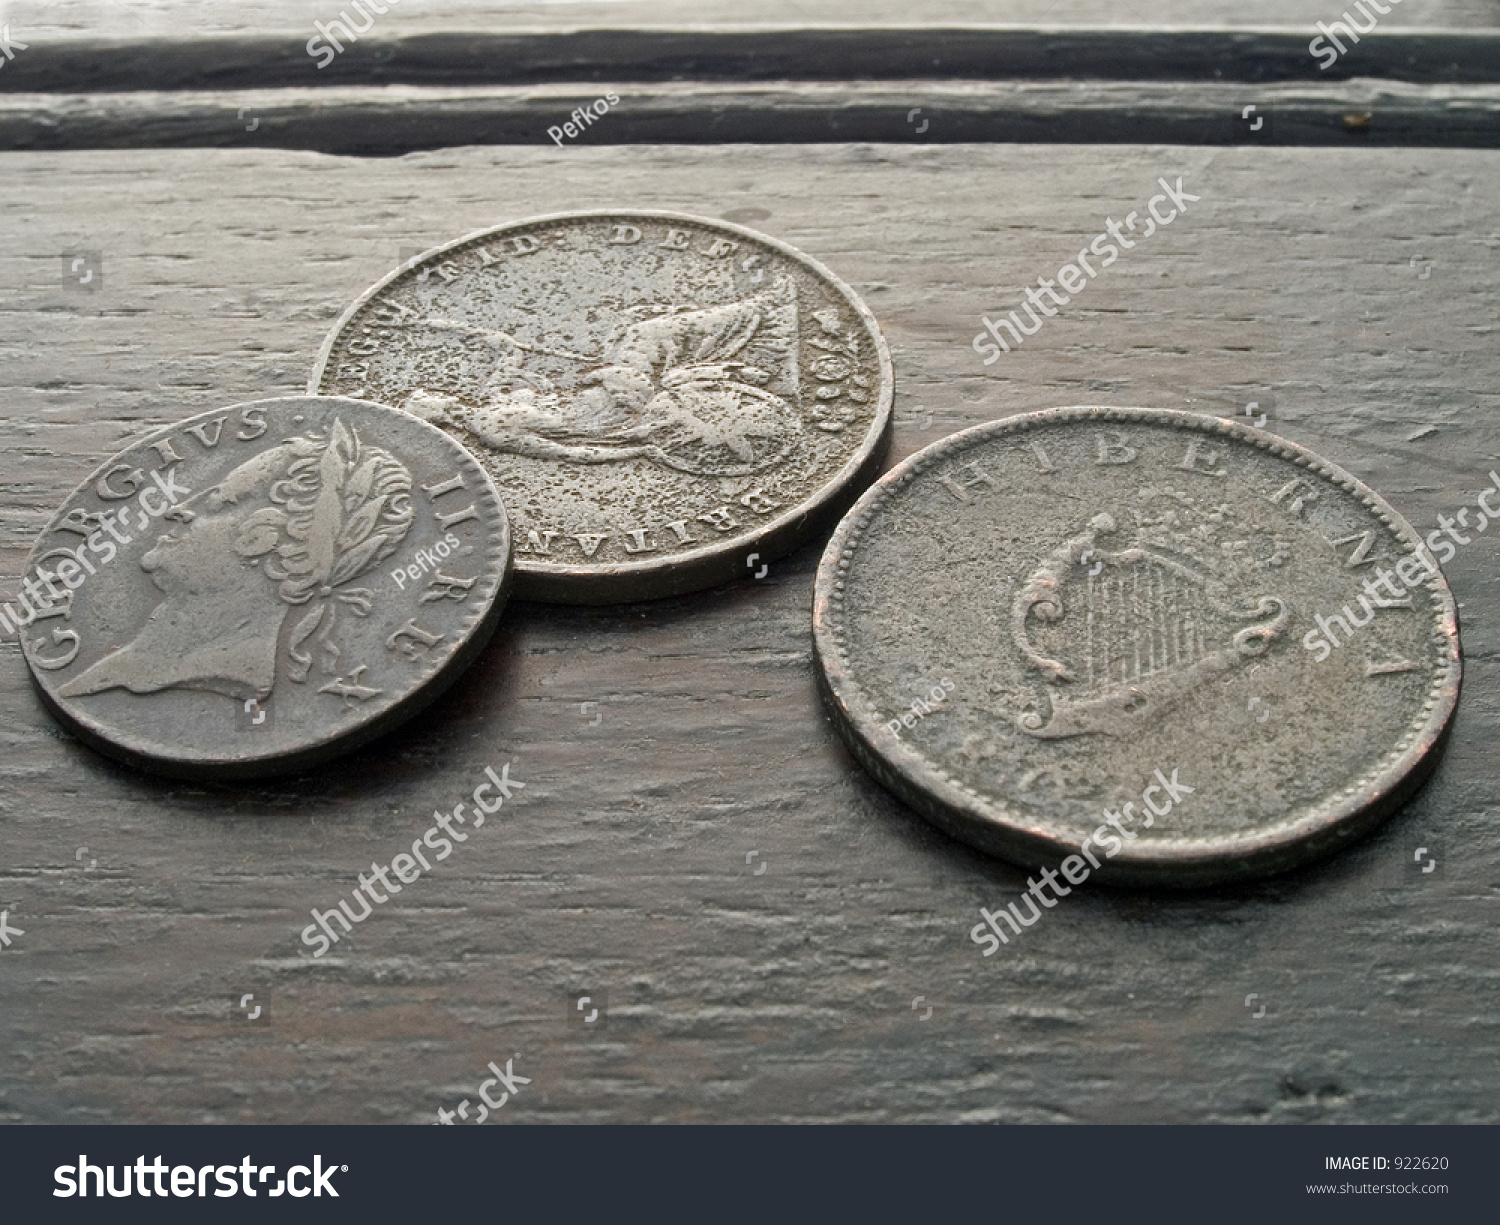 old coins stock image - photo #7